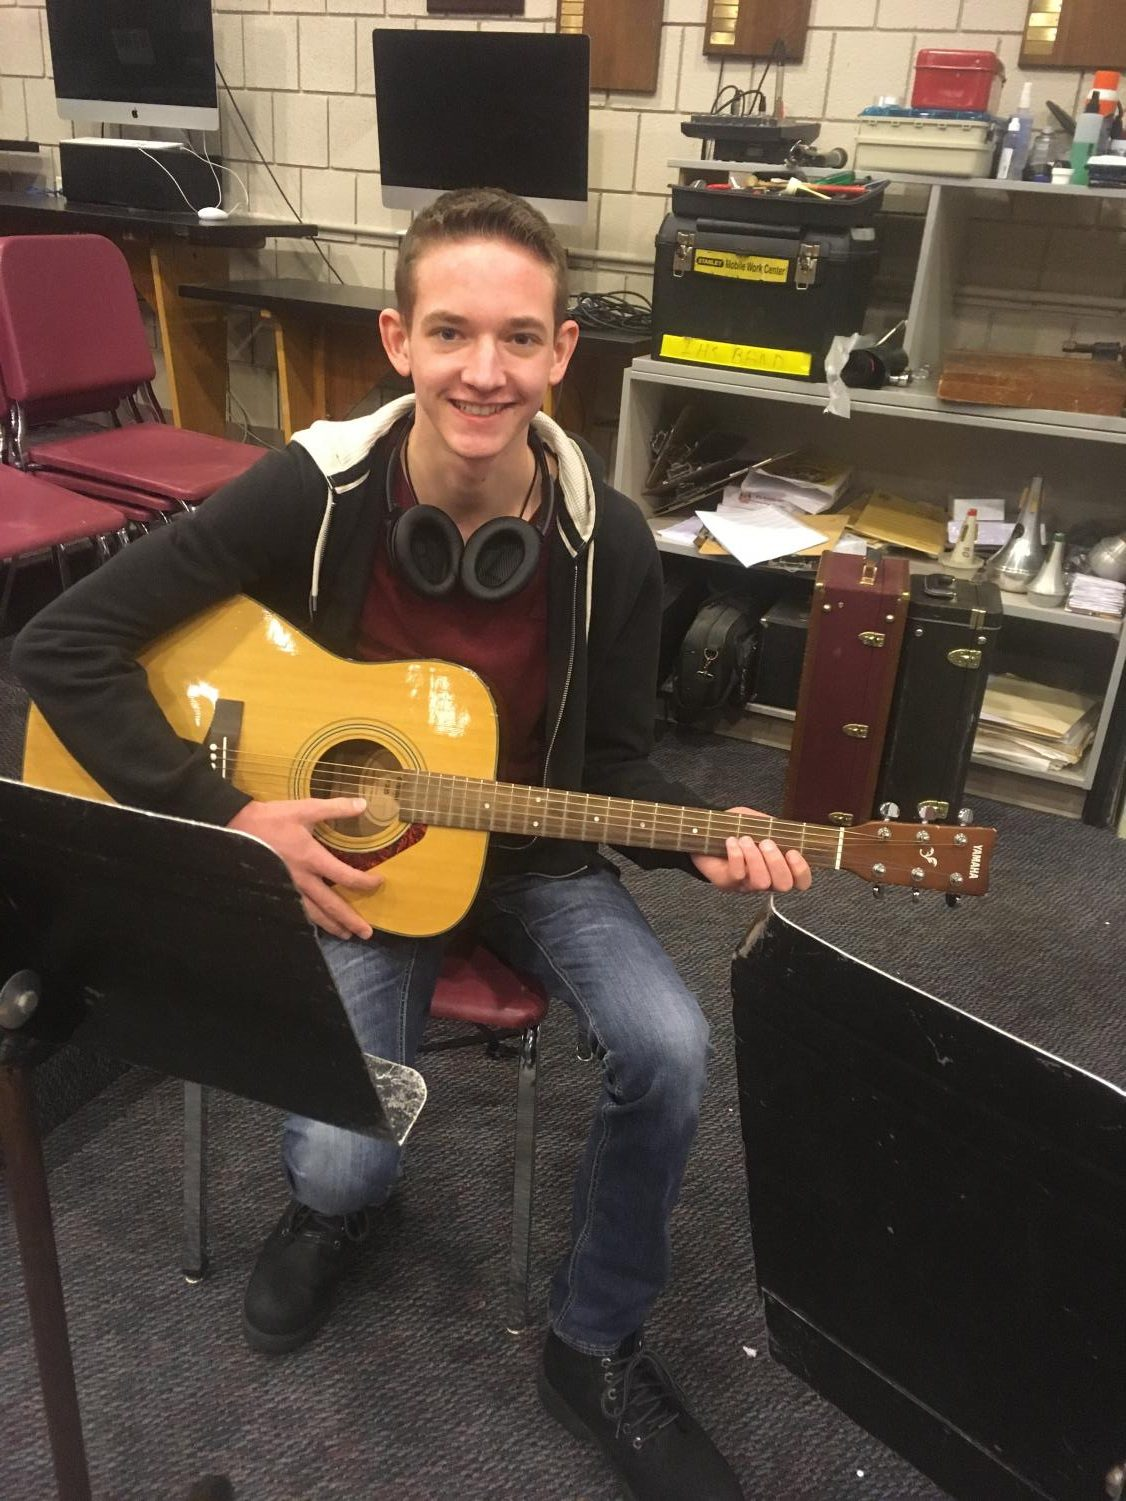 Senior Bradley Mcdowell sitting with his guitar